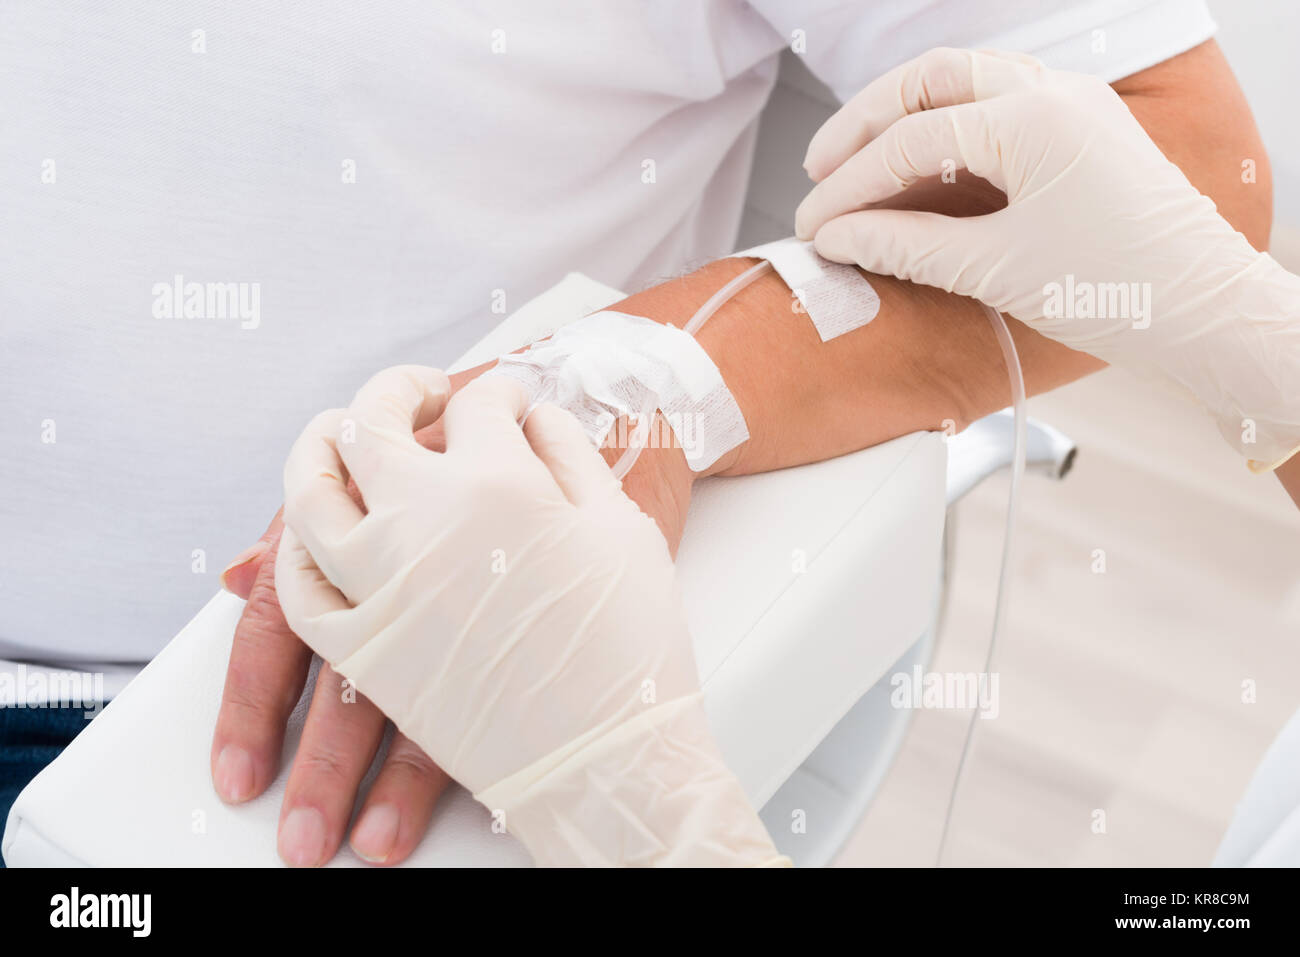 Iv Drip Inserted In Patient's Hand - Stock Image